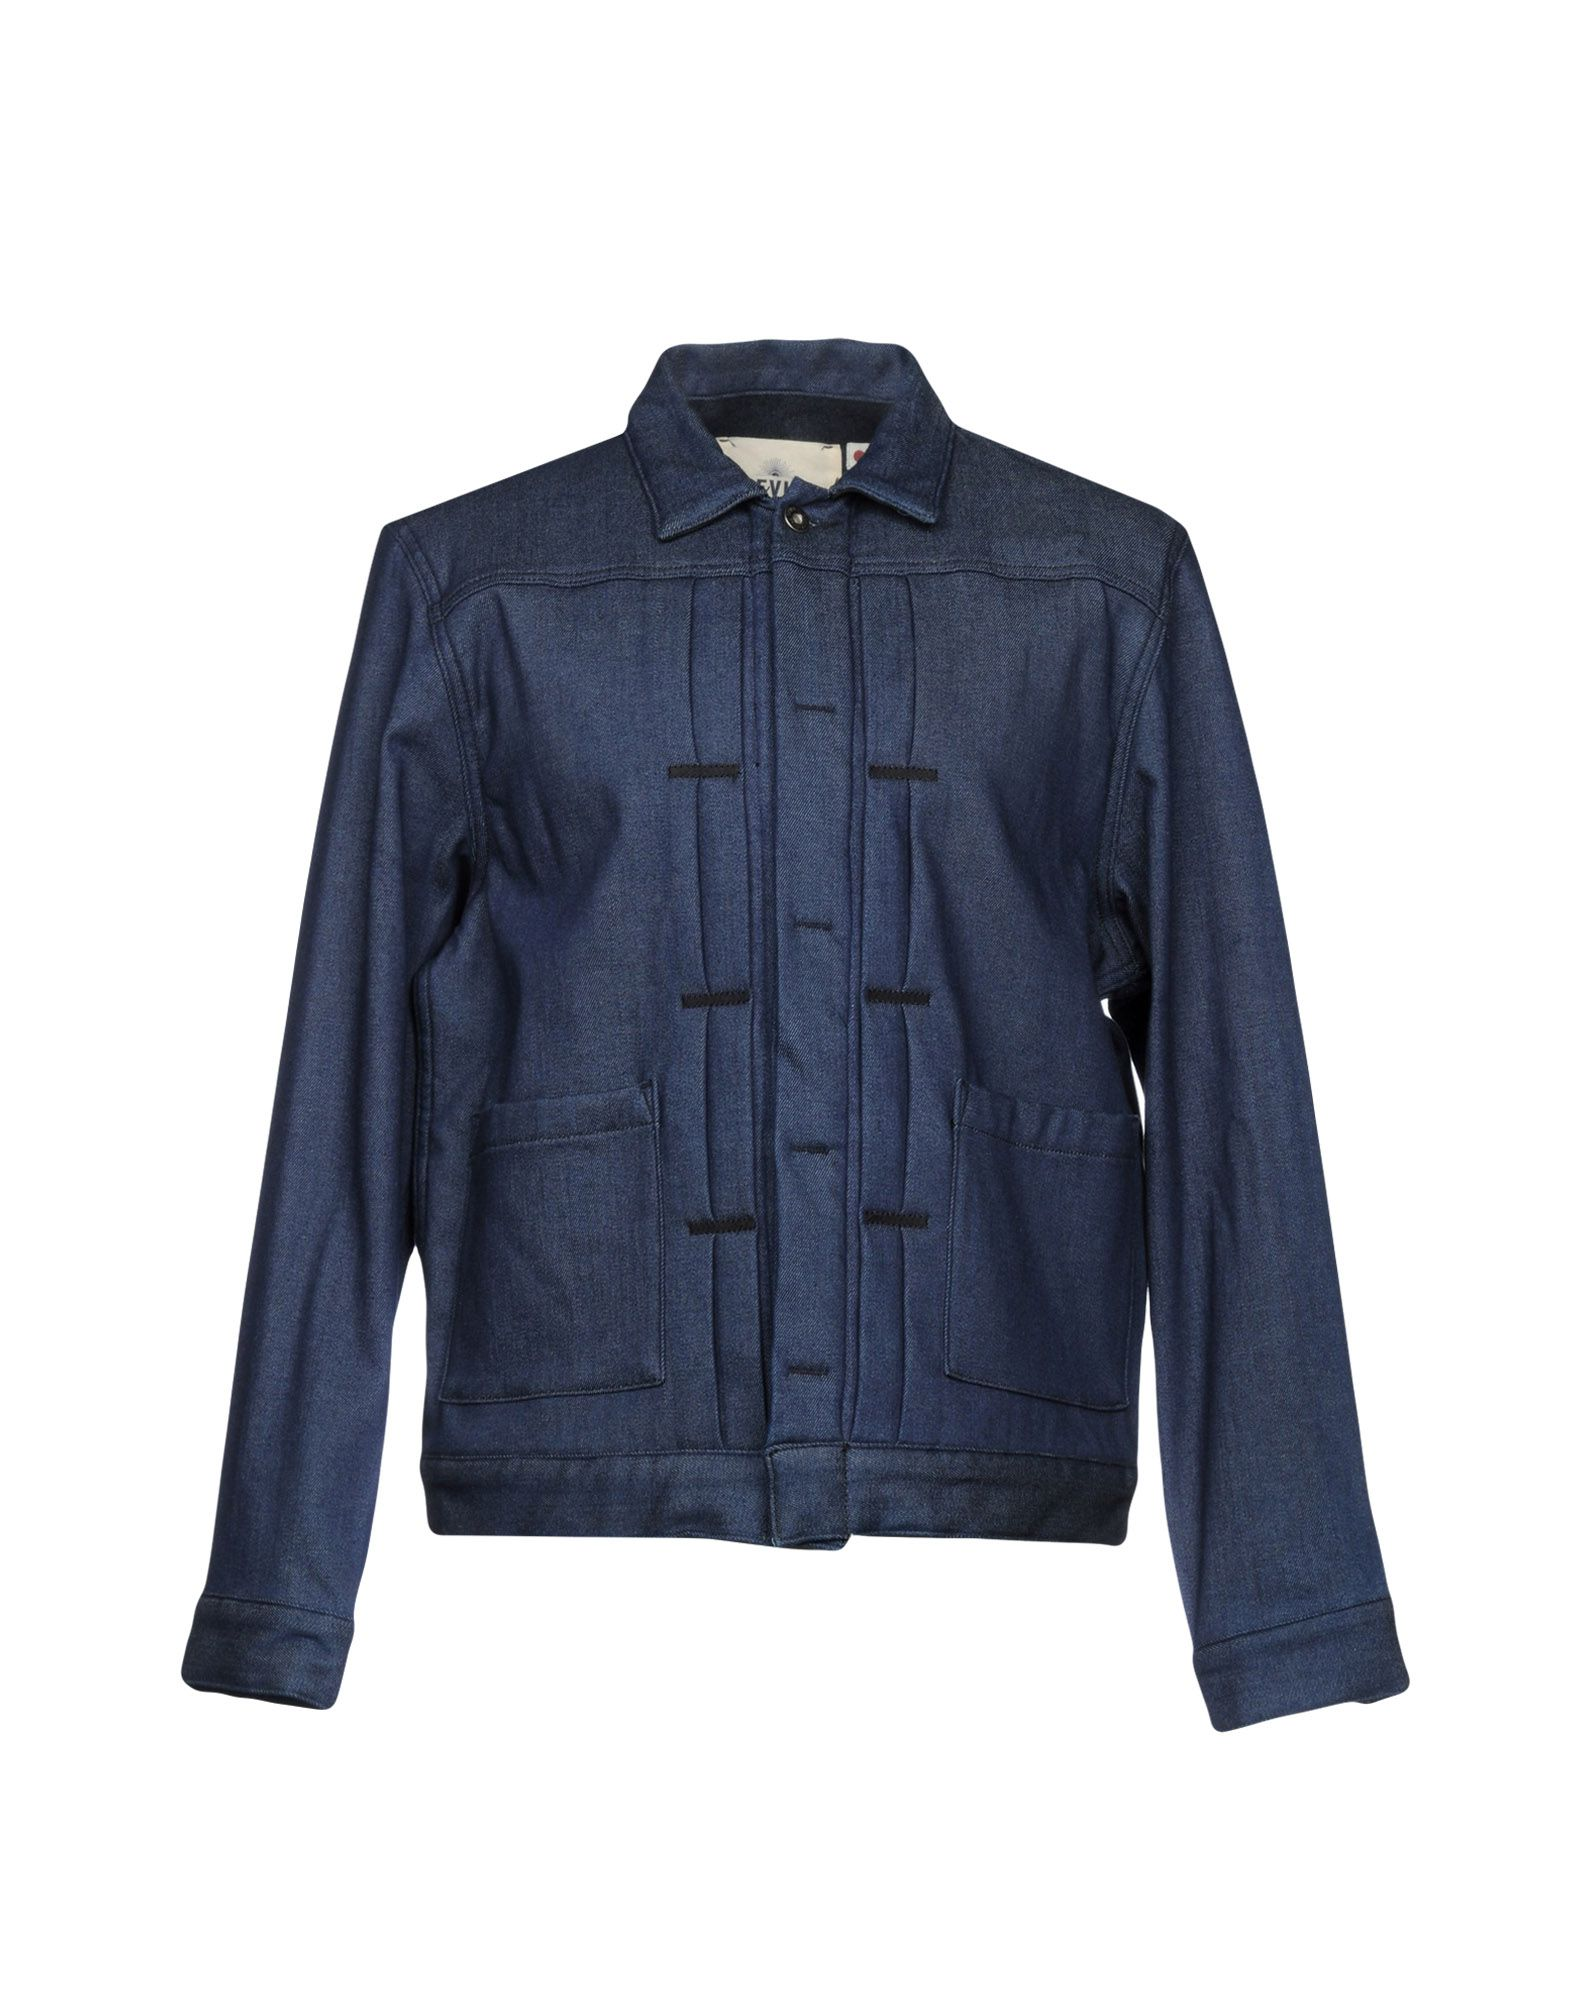 LEVI'S®  MADE & CRAFTED™ Джинсовая верхняя одежда managing projects made simple